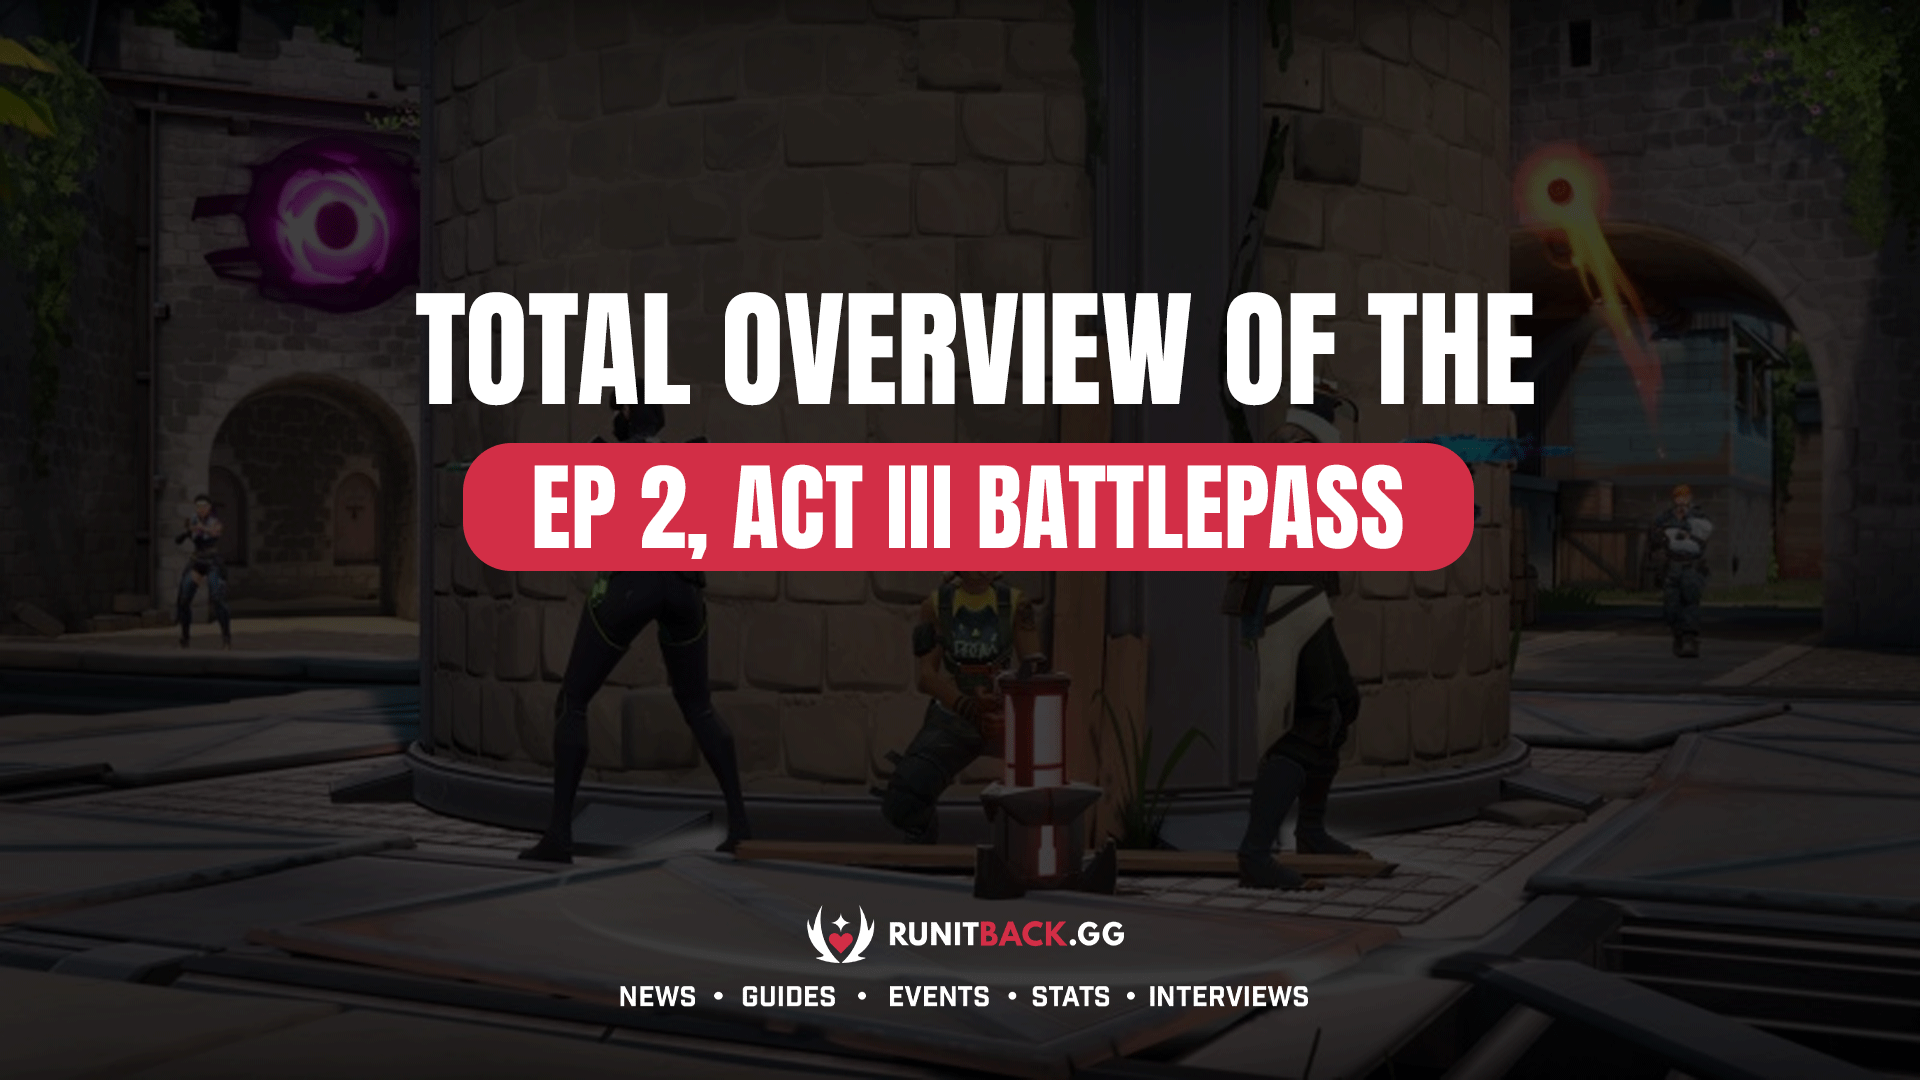 Total Overview of the Ep 2, Act III Battlepass